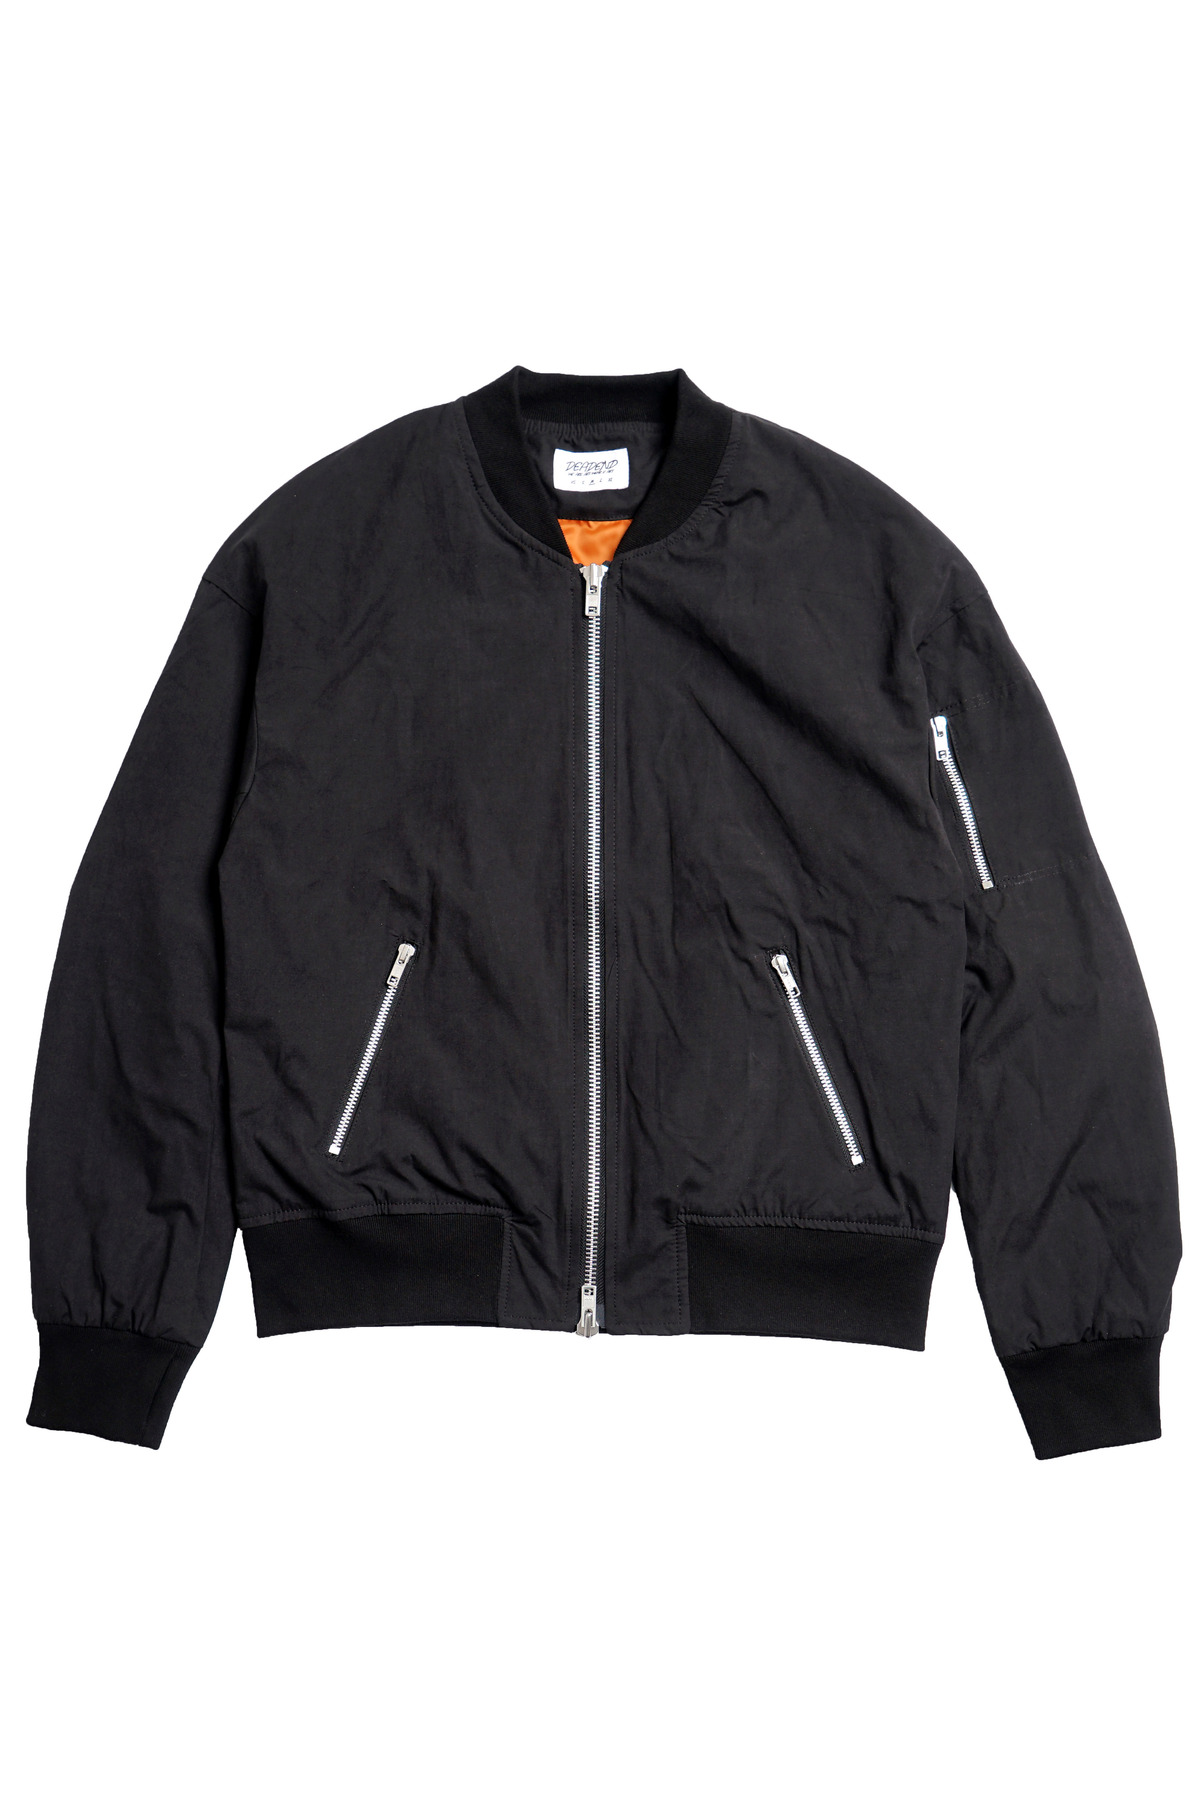 BLACK SET IN RAGLAN FLIGHT JACKET